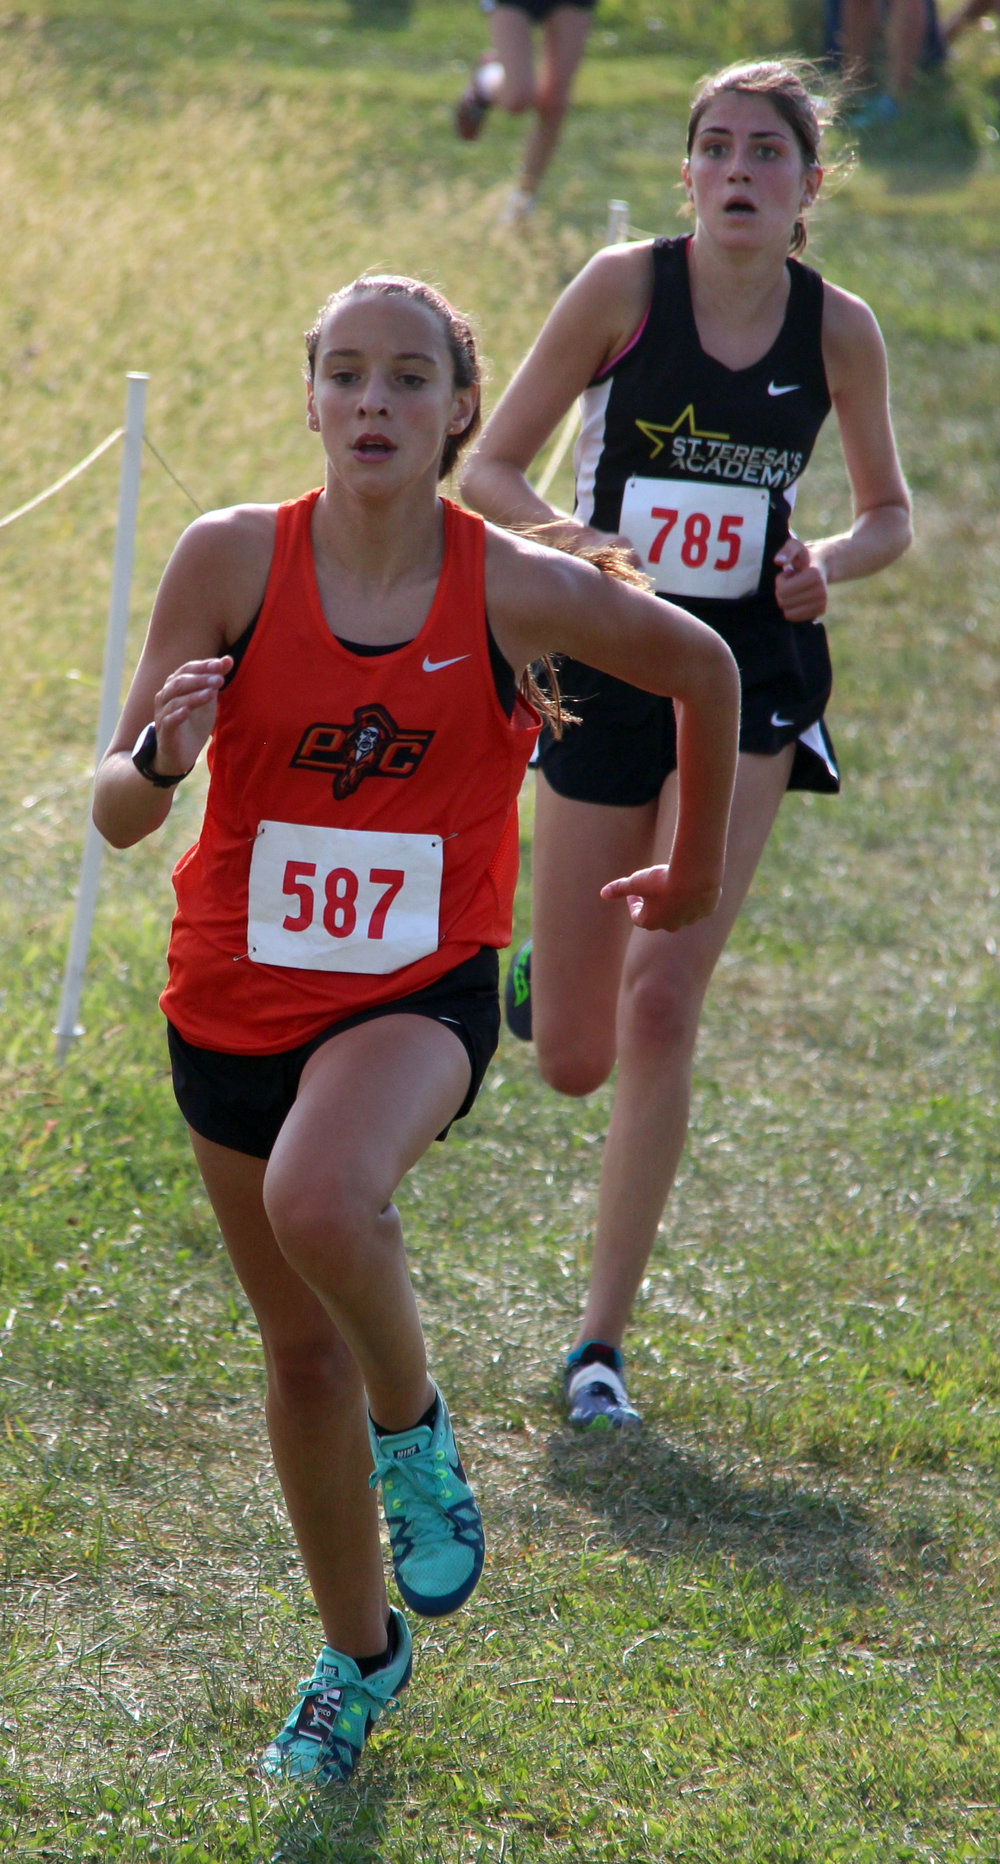 ROSS MARTIN/Citizen photo Platte County freshman Maddie Klippenstein approaches the finish line at Platte Ridge Park during the Platte County Invitational on Thursday, Sept. 14.